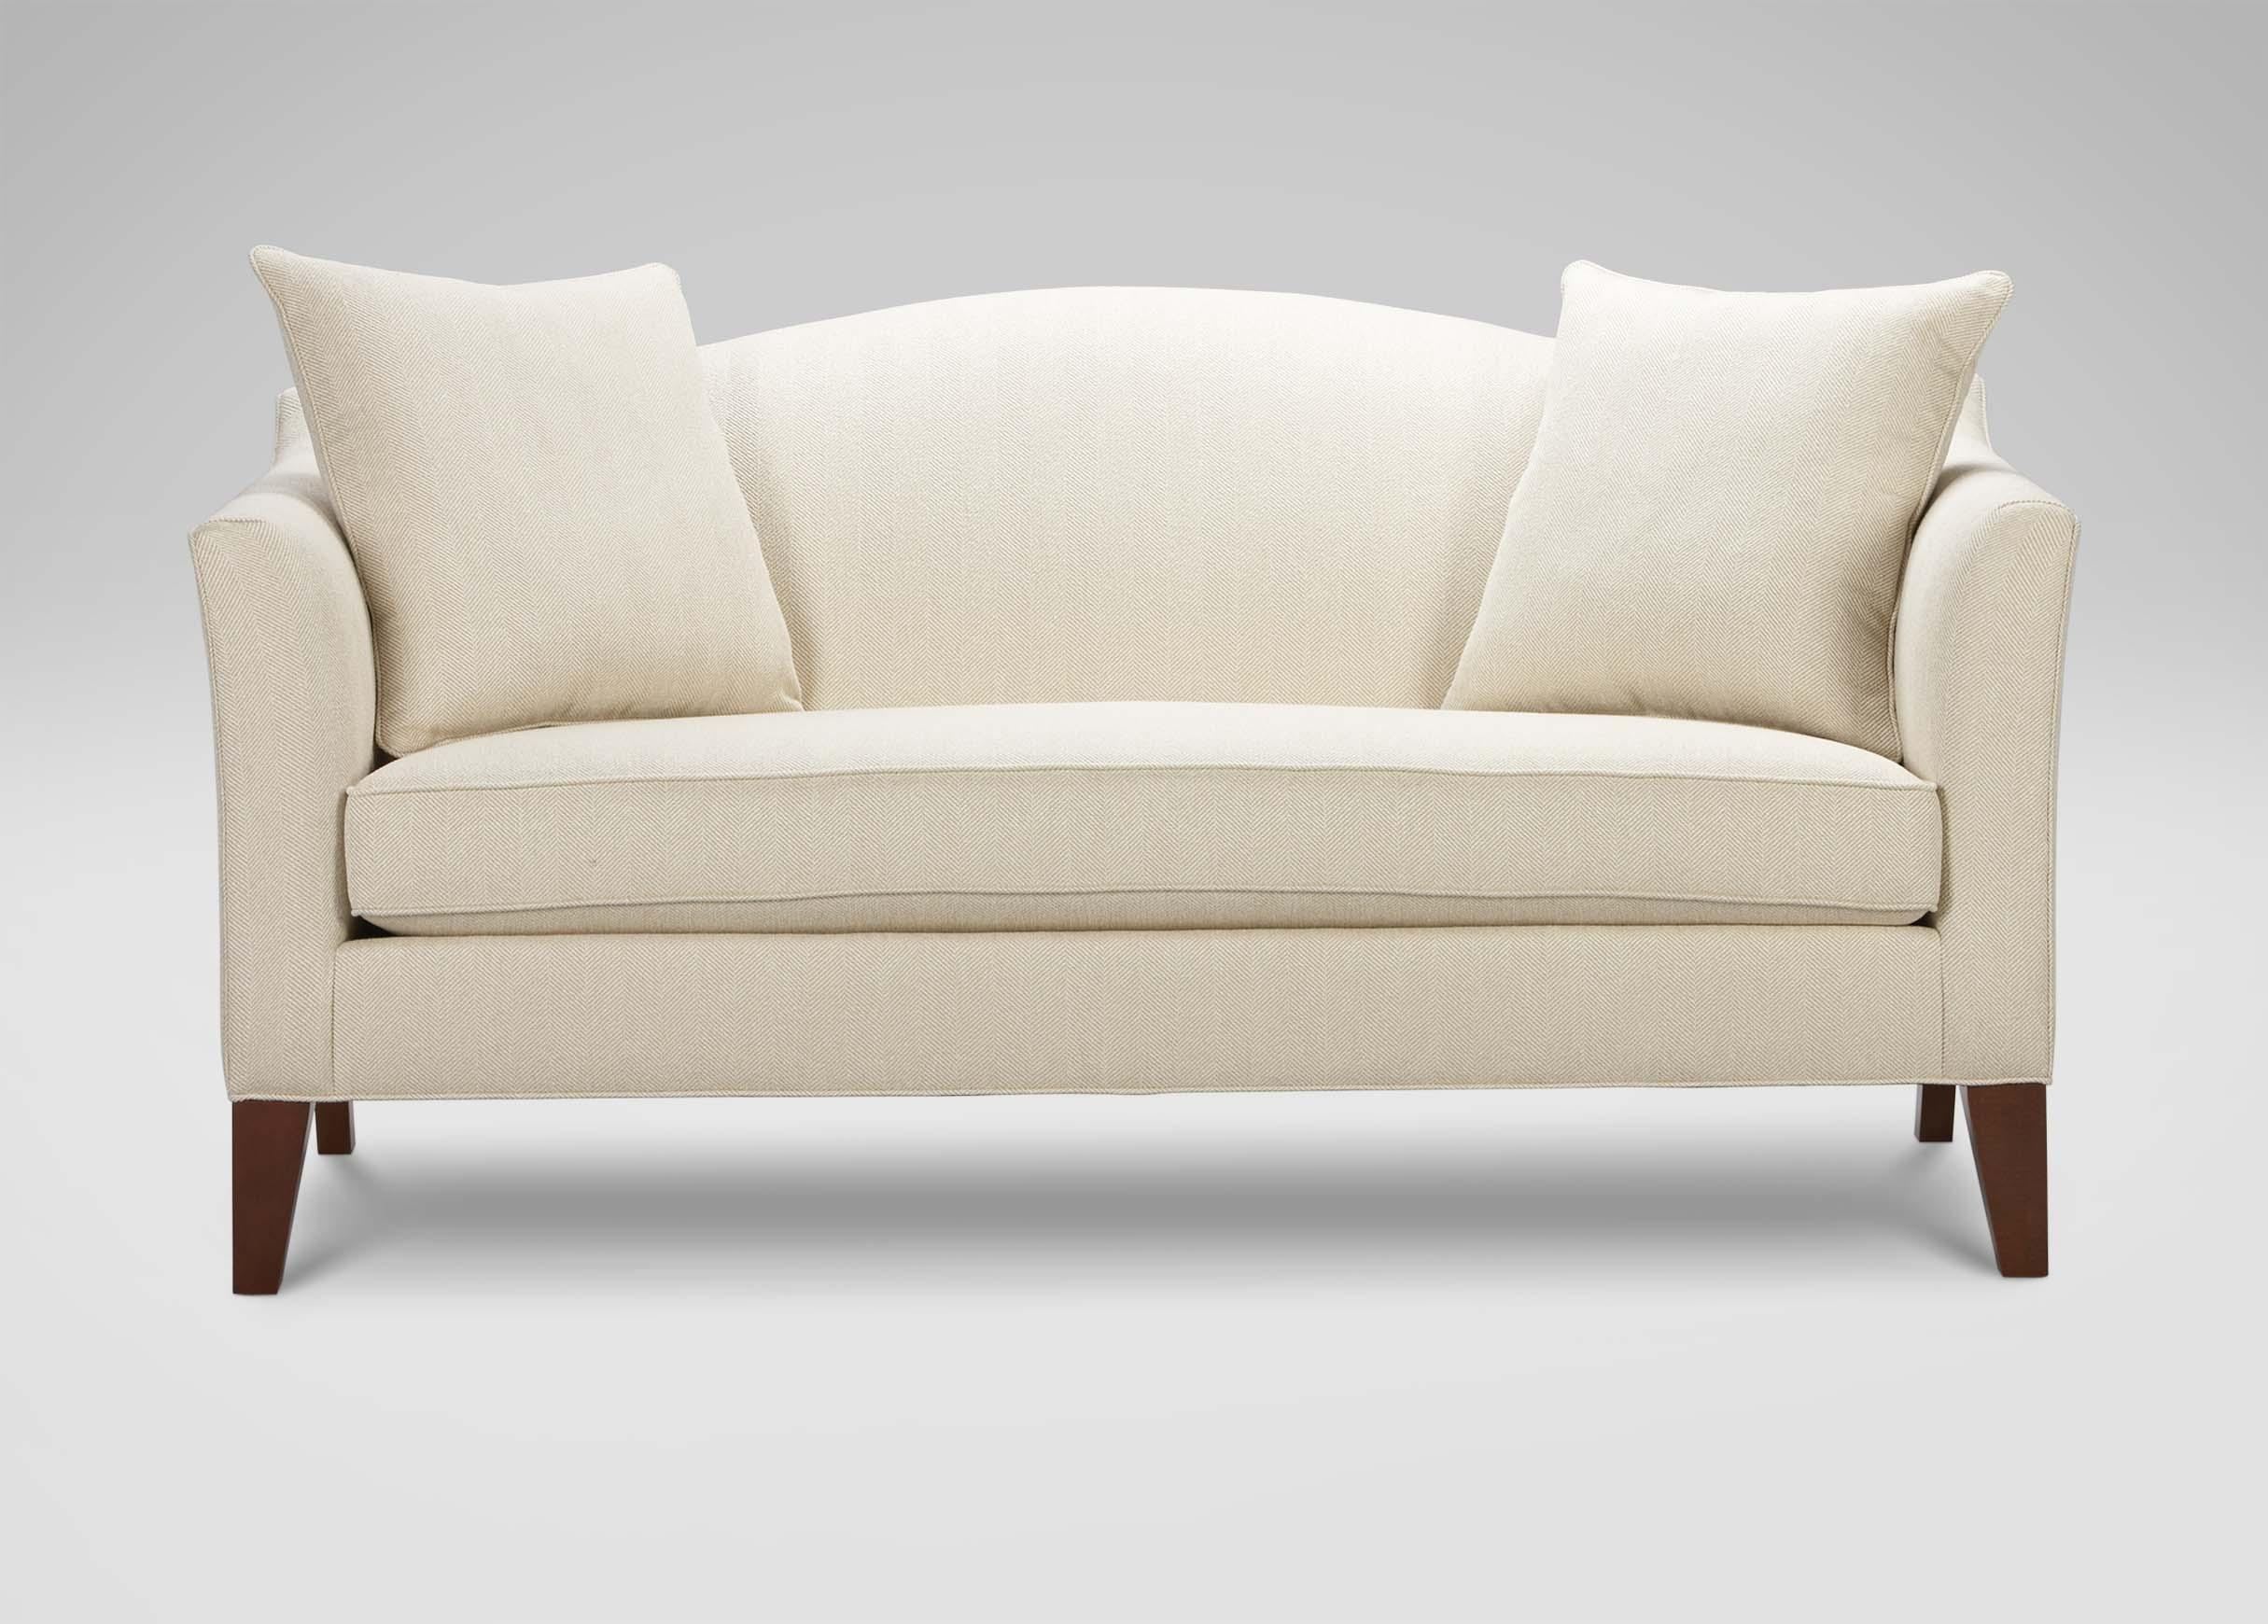 Hartwell Sofa | Sofas & Loveseats For Ethan Allen Sofas And Chairs (Image 11 of 20)